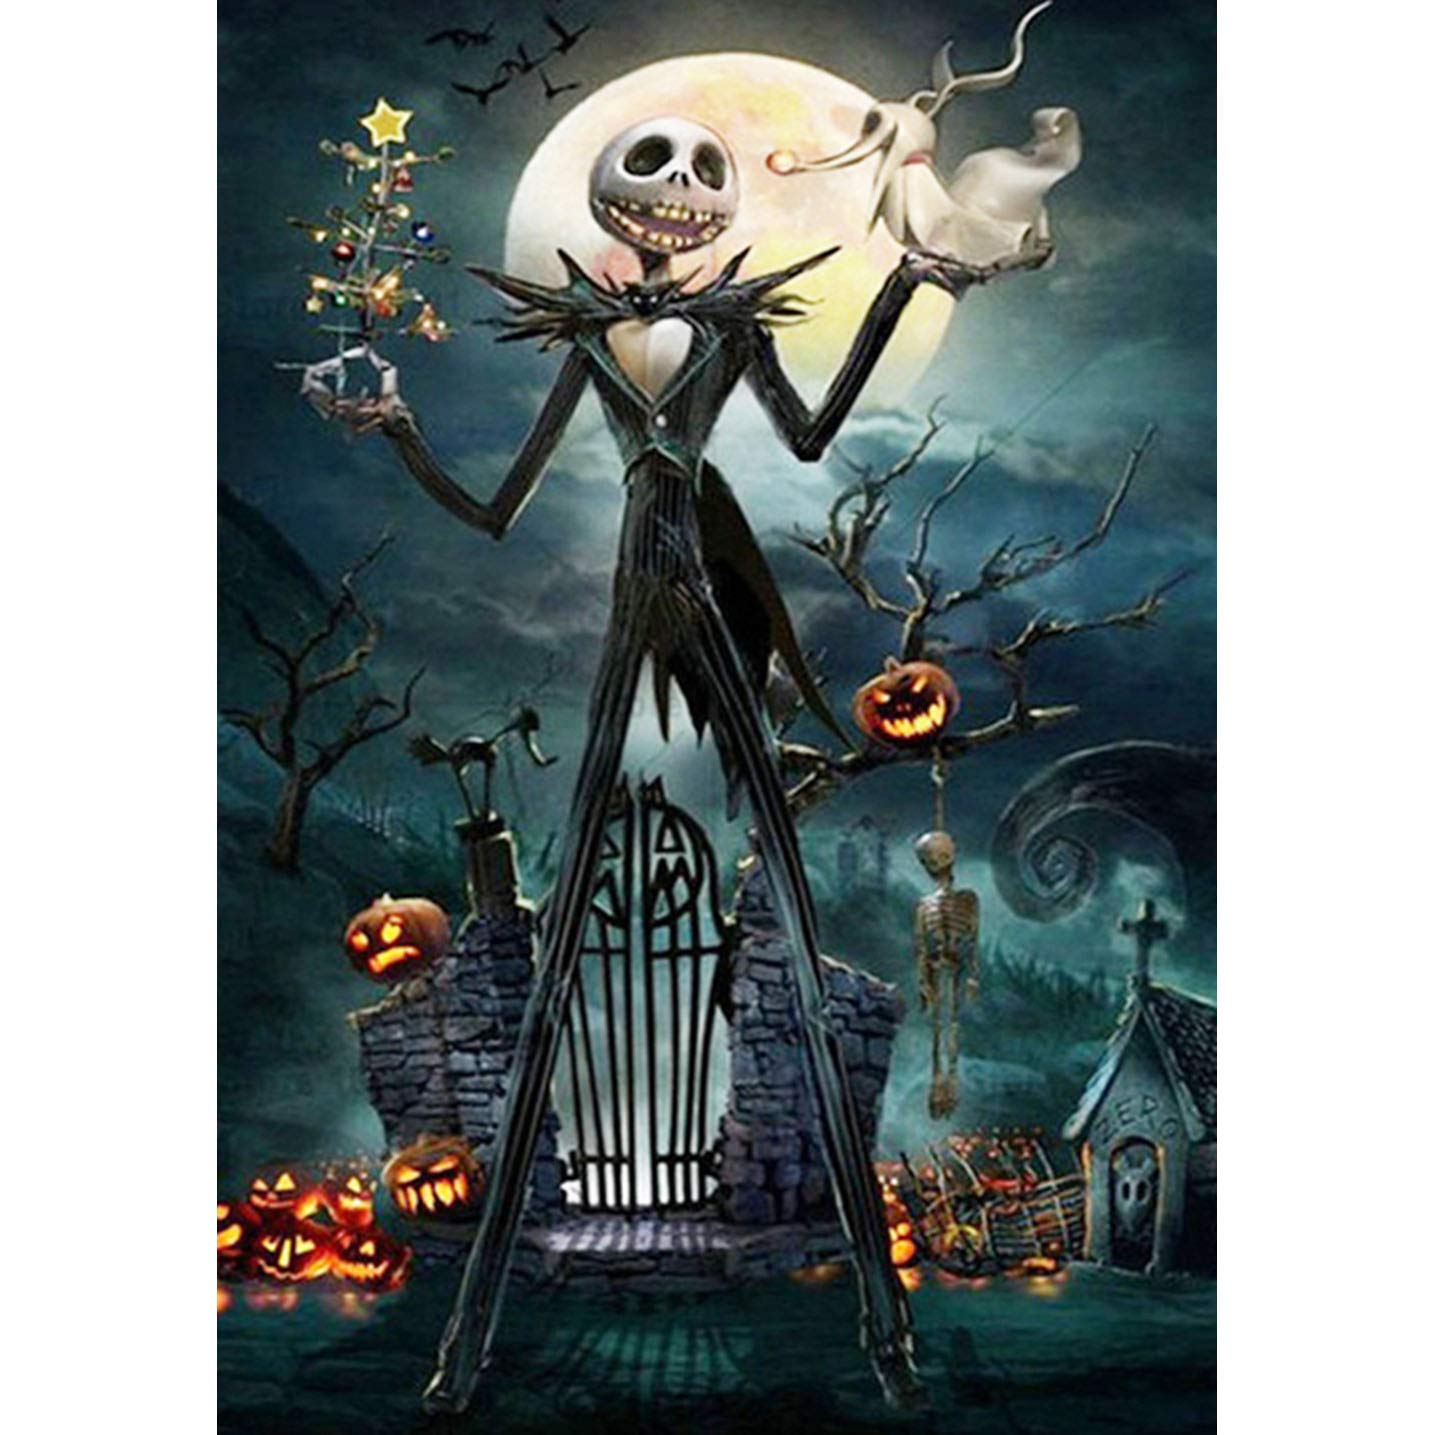 Halloween 5D DIY Diamond Painting Full Drill Round Resin Beads Pictures Skull of Crystals Diamond Dotz Kits,Arts, Crafts & Sewing Cross Stitch for Home Decor 12x16 30 x 40 cm Better Selection